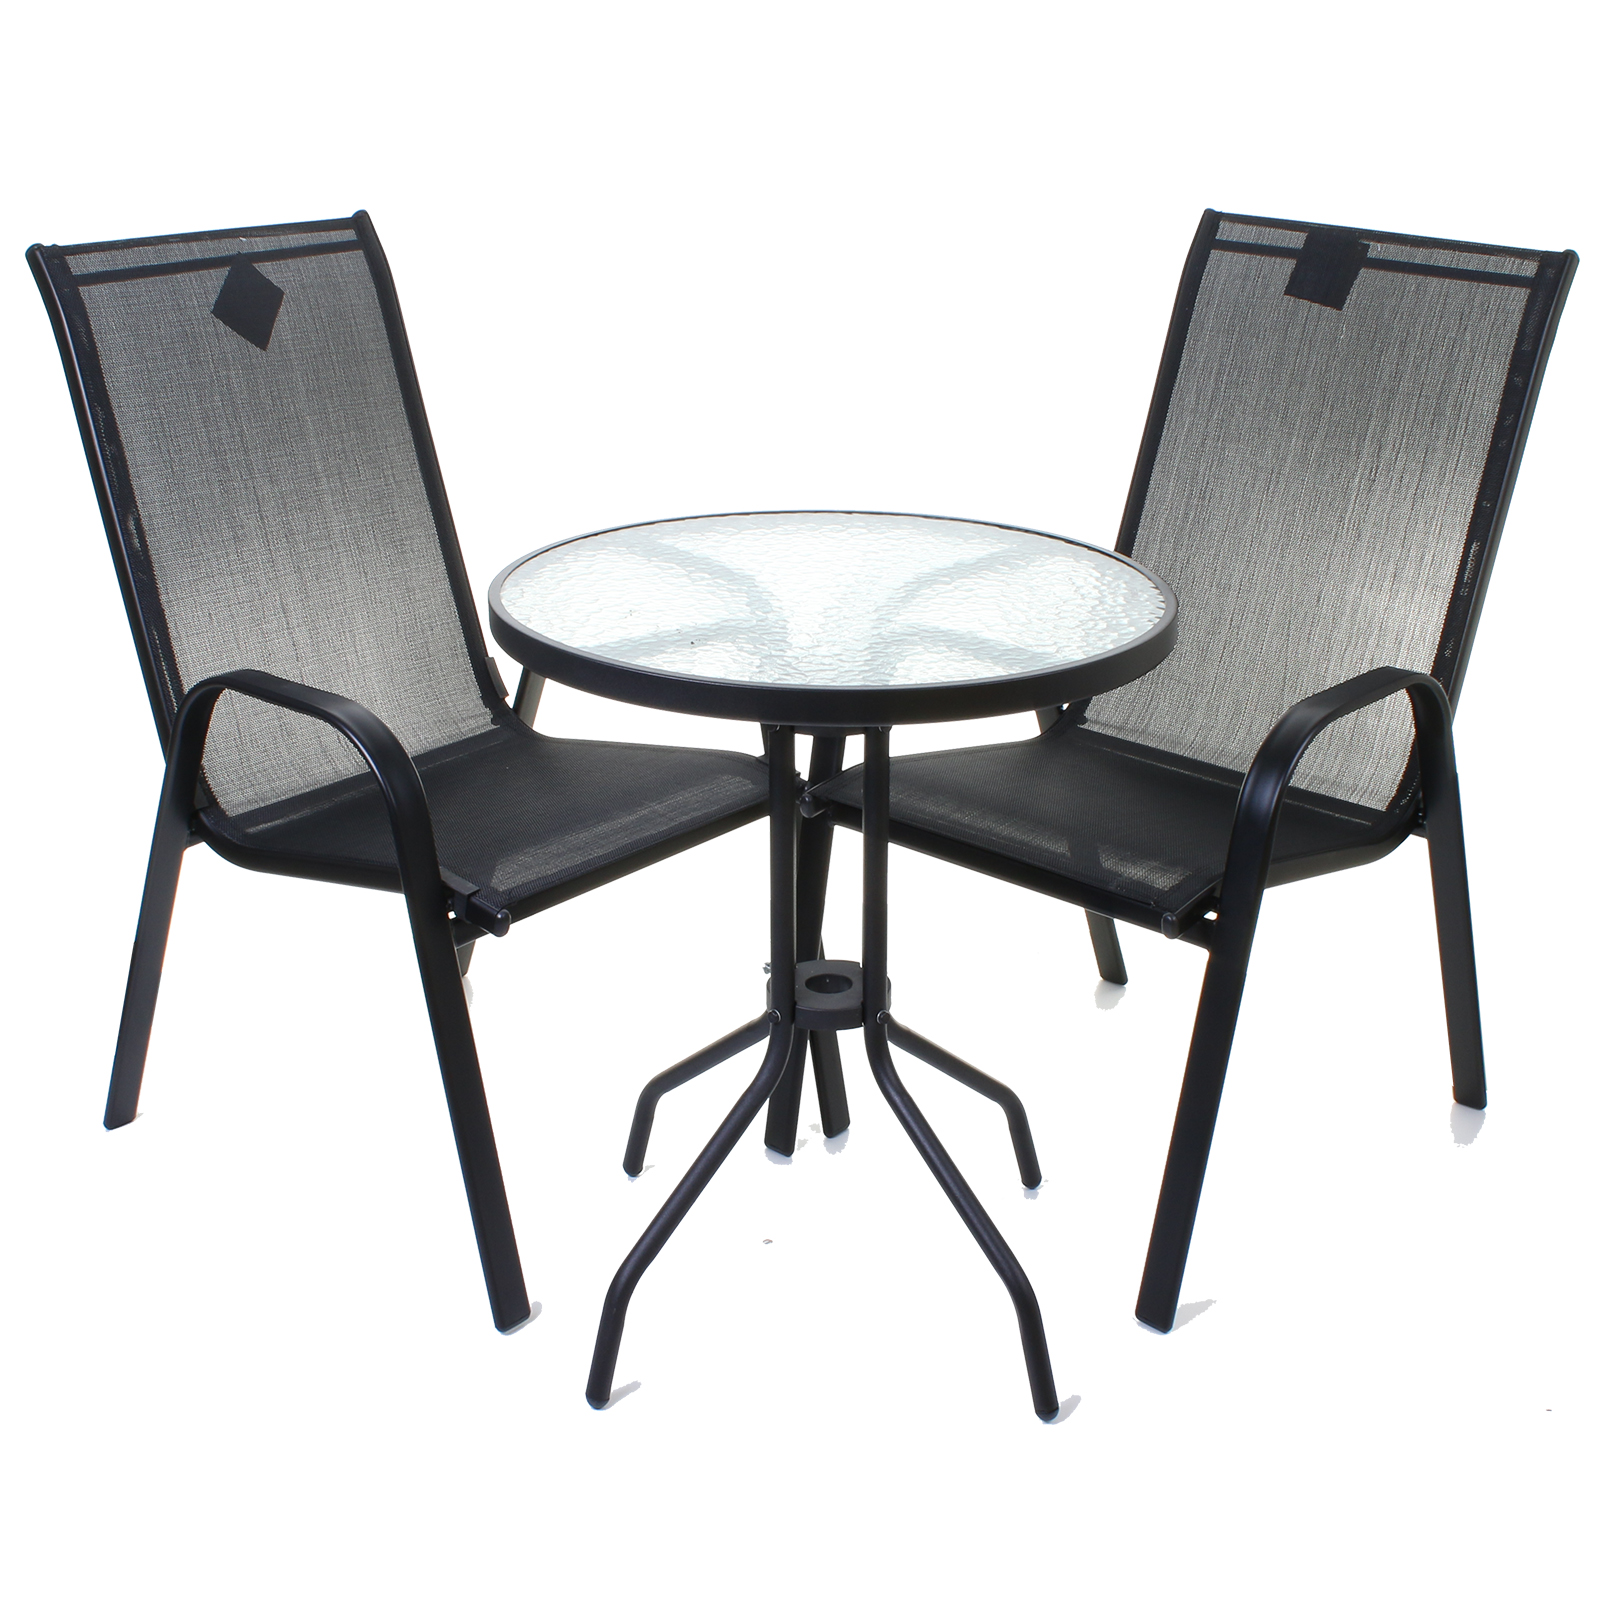 Garden Furniture Set Patio Outdoor Large Seating Dining Area Chair Table Parasol Ebay